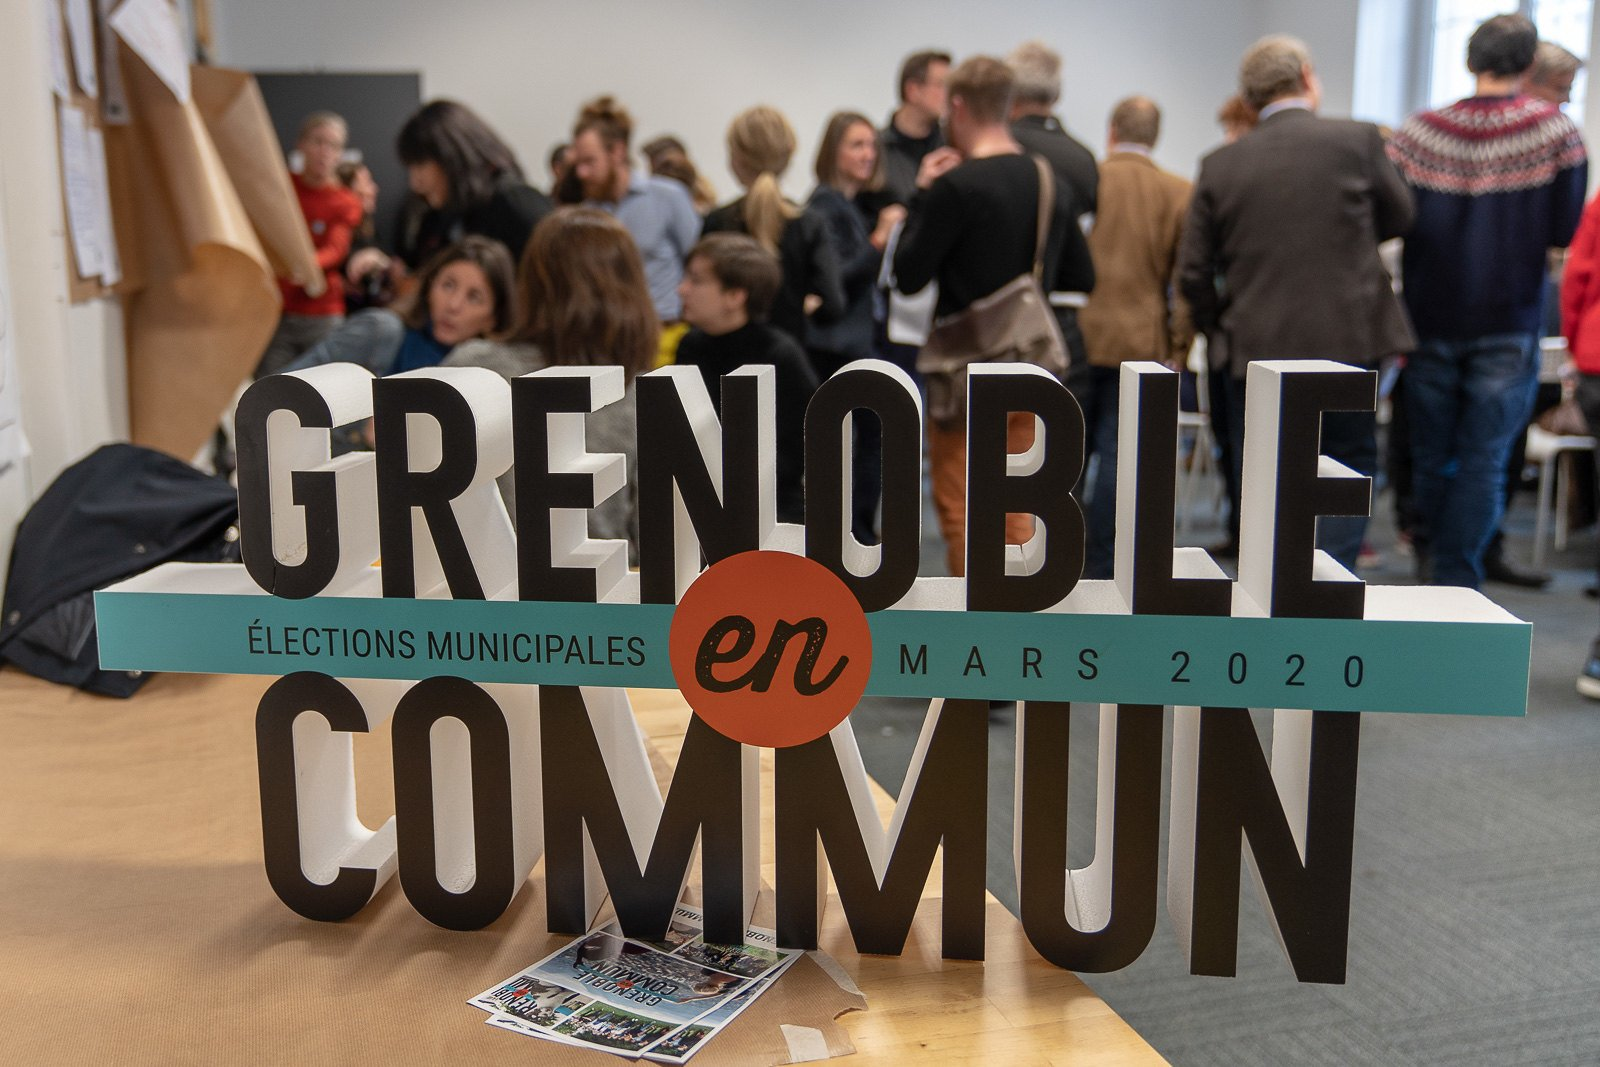 Grenoble en Commun French Tech